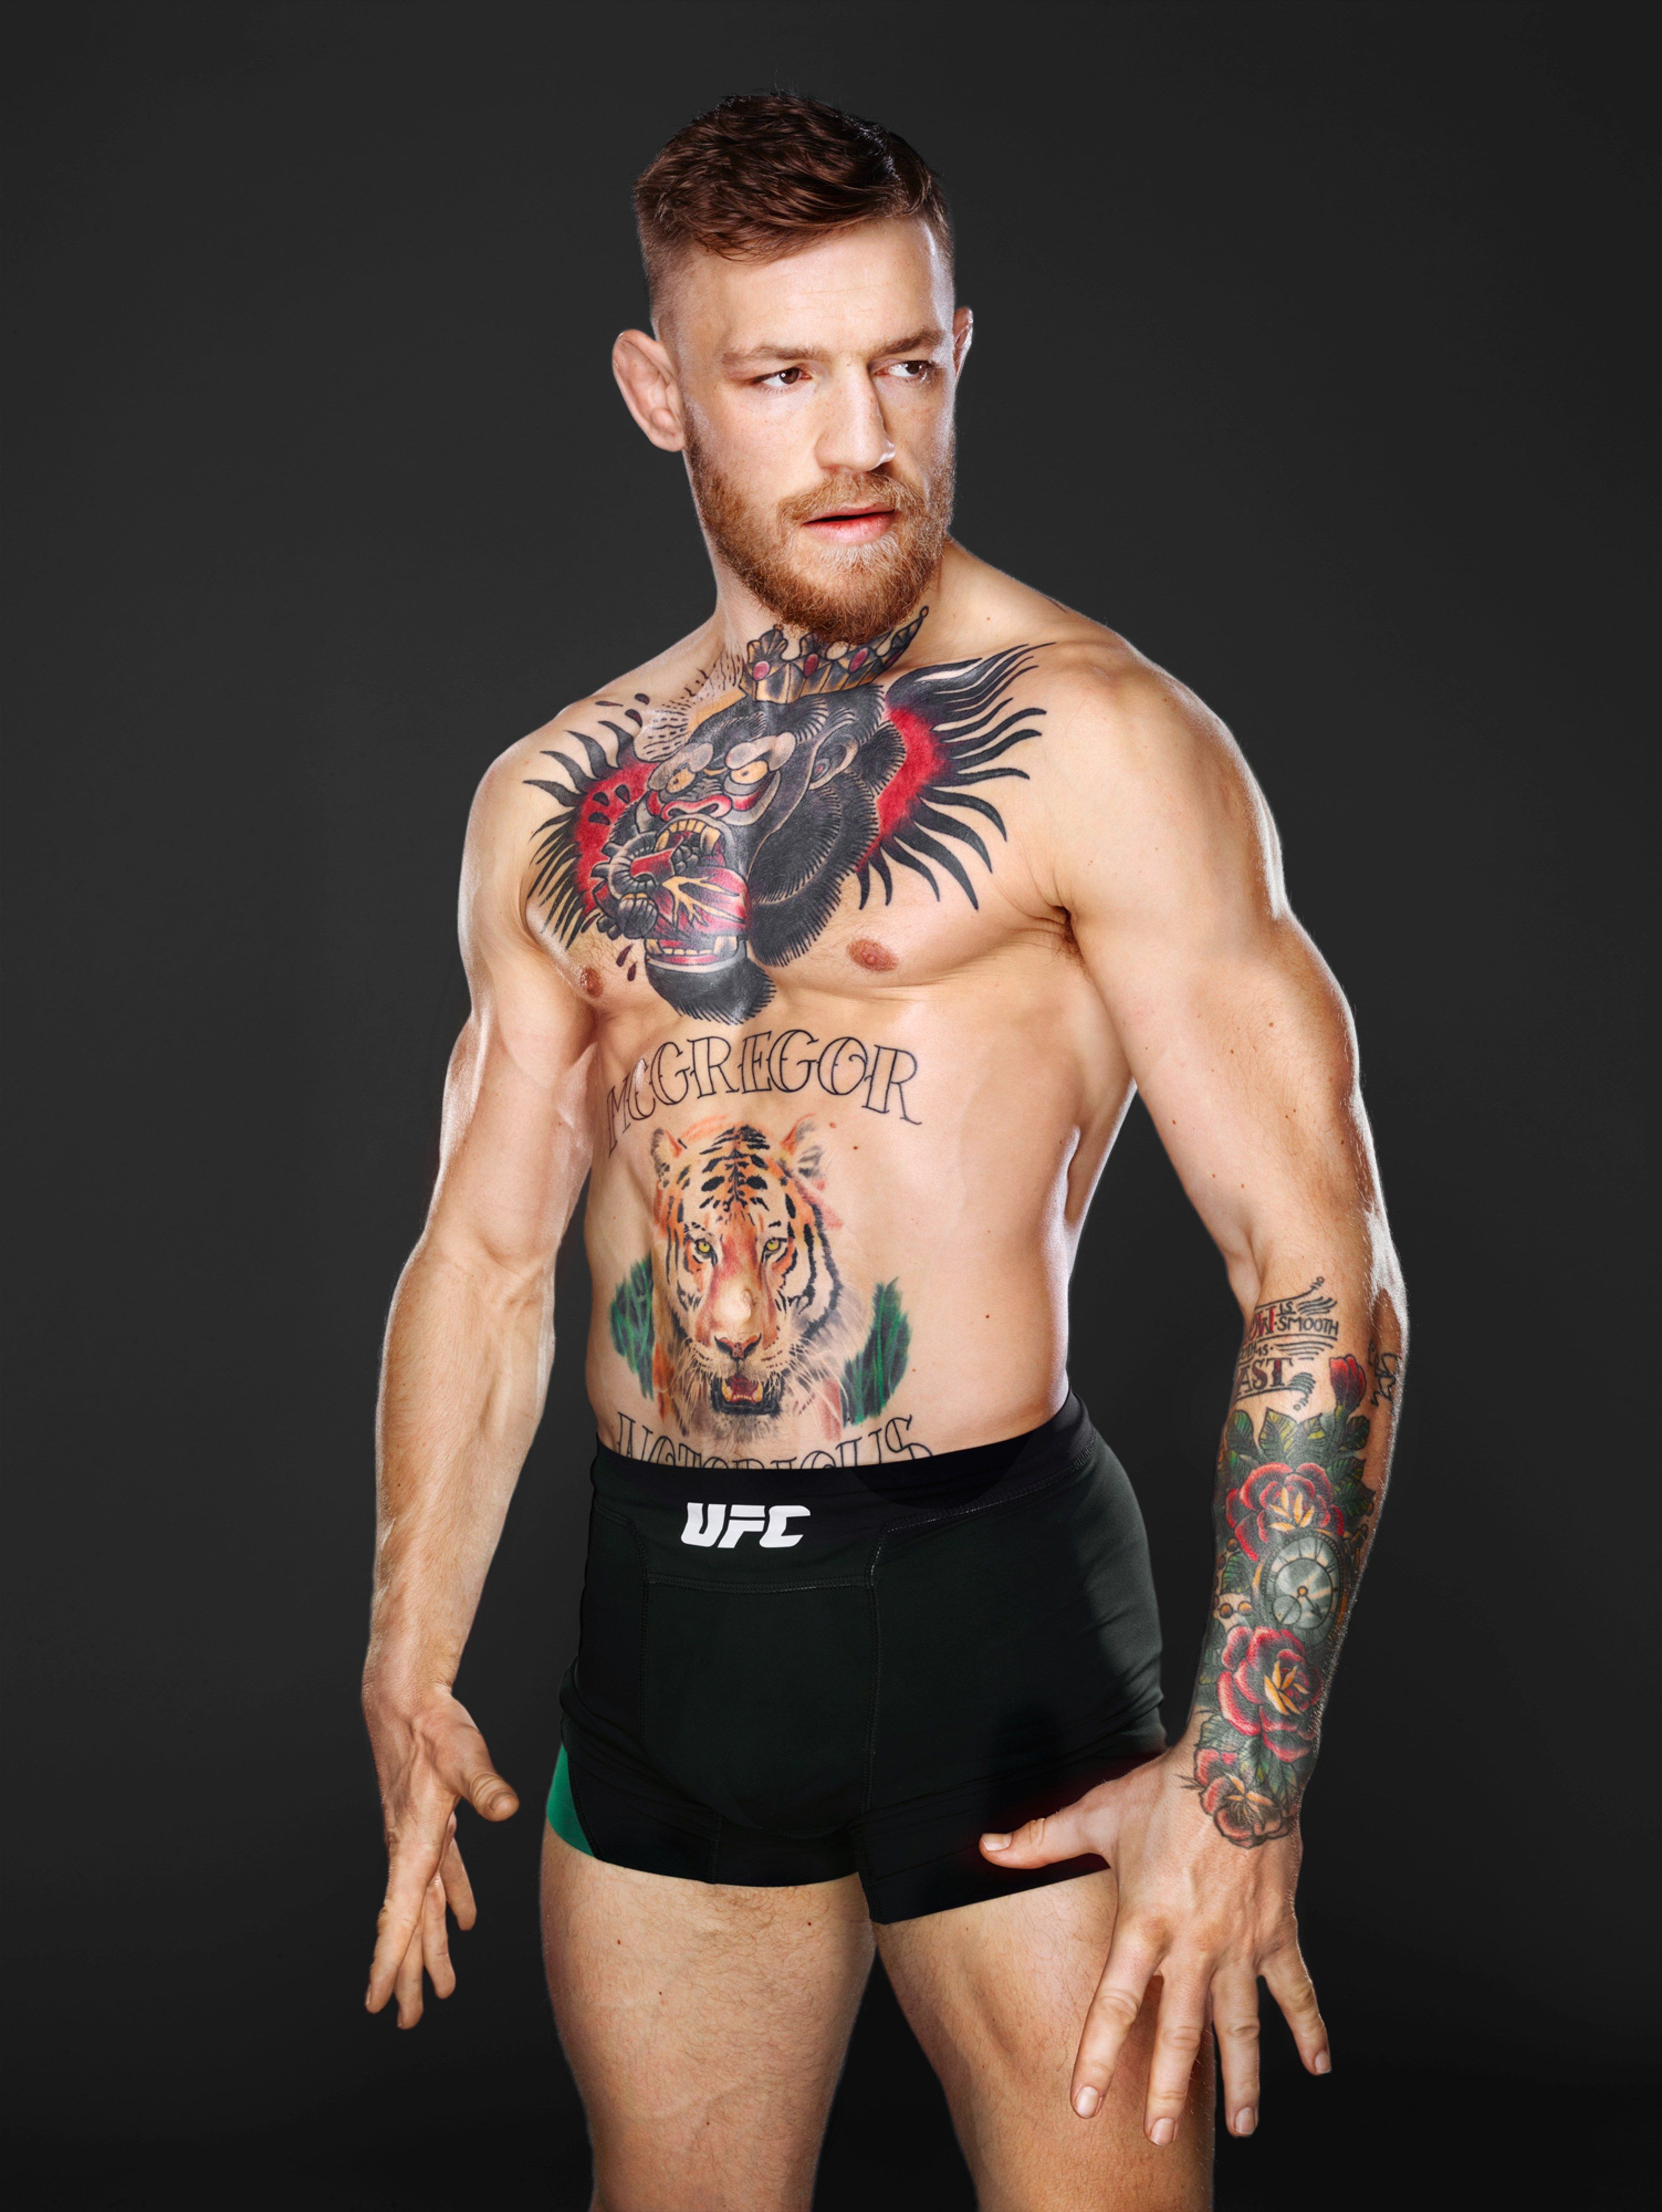 conor mcgregor focus the best ufc mixedmartialarts mma photos by cagecult http. Black Bedroom Furniture Sets. Home Design Ideas